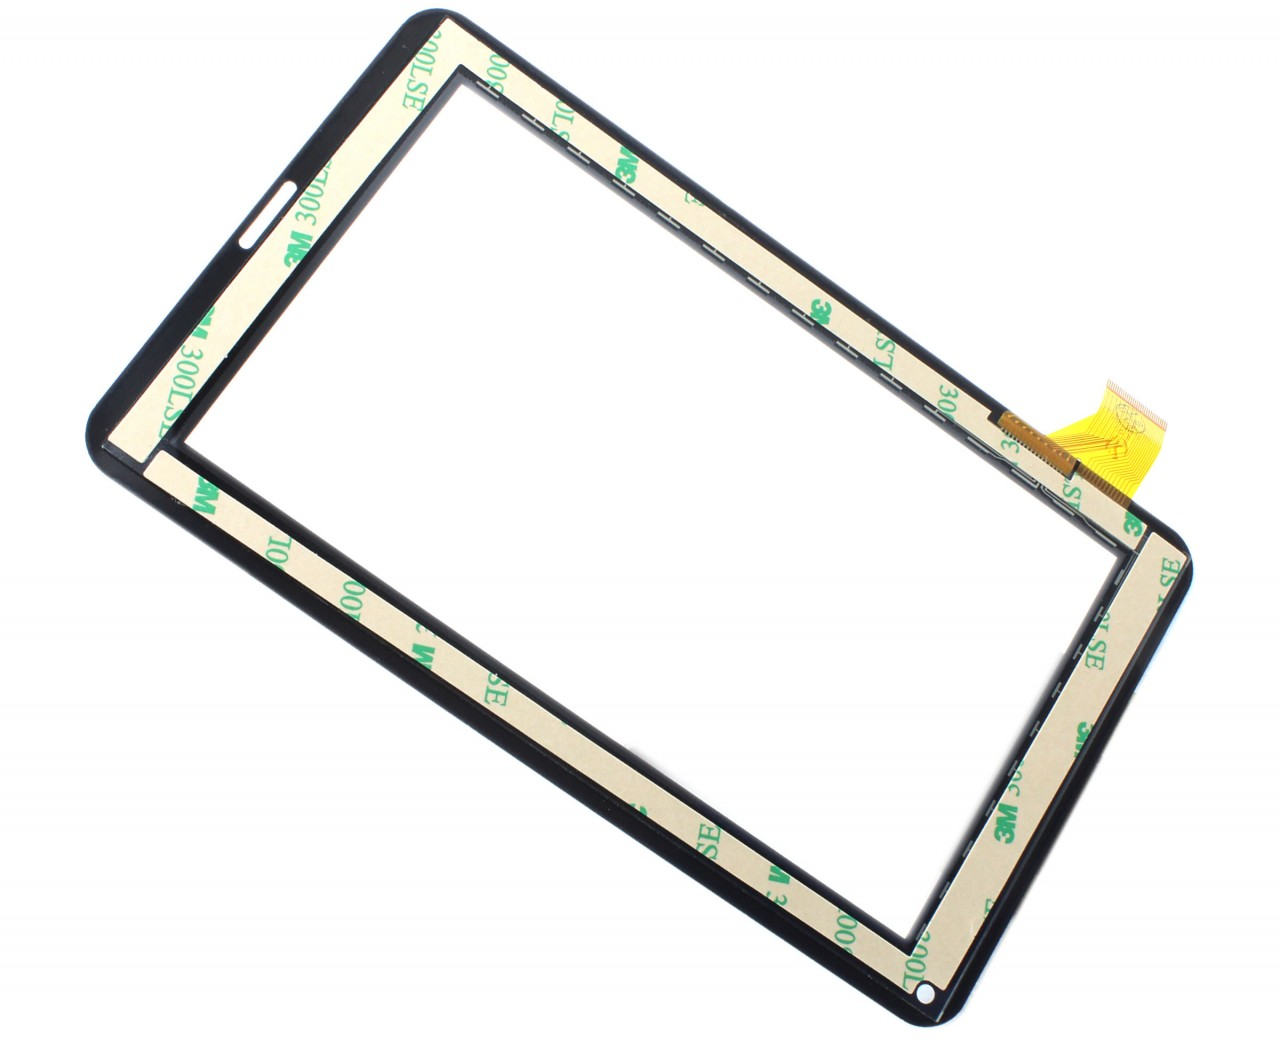 Touchscreen Digitizer Serioux S710 GoTab S710Tab Visiontab Geam Sticla Tableta imagine powerlaptop.ro 2021